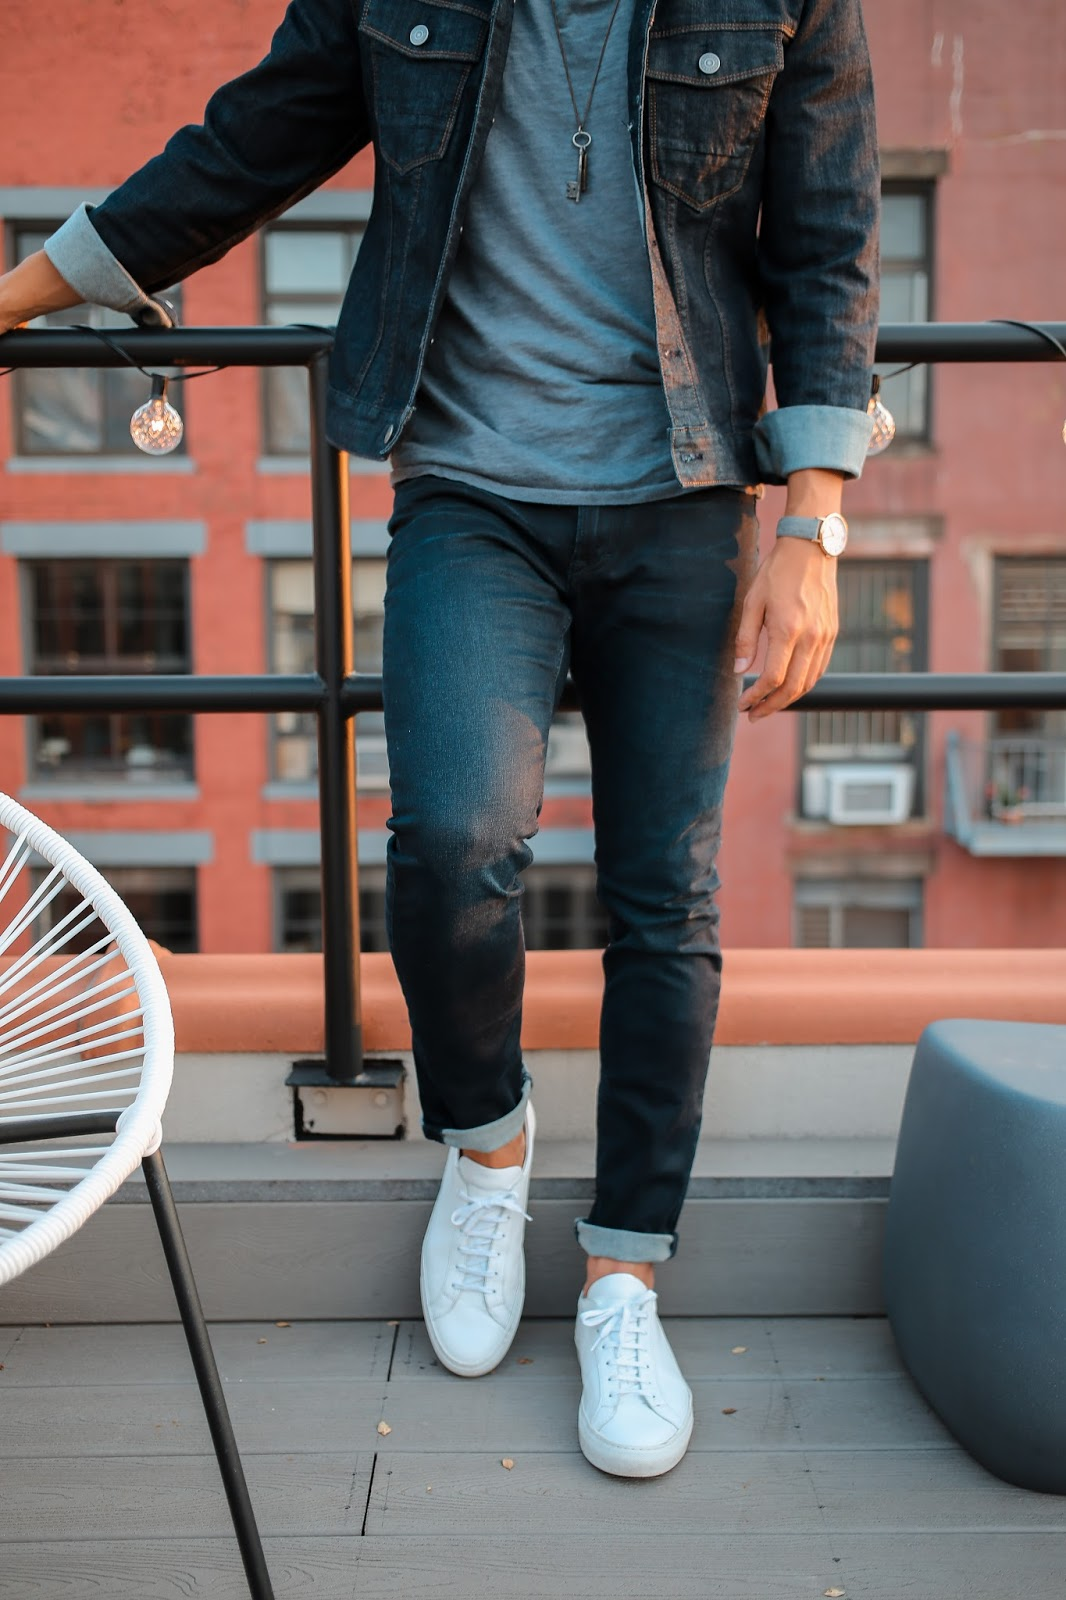 Men's Summer Style, Denim Jacket, Double Denim, Day to Night, The Express Life, Prada Sunglasses